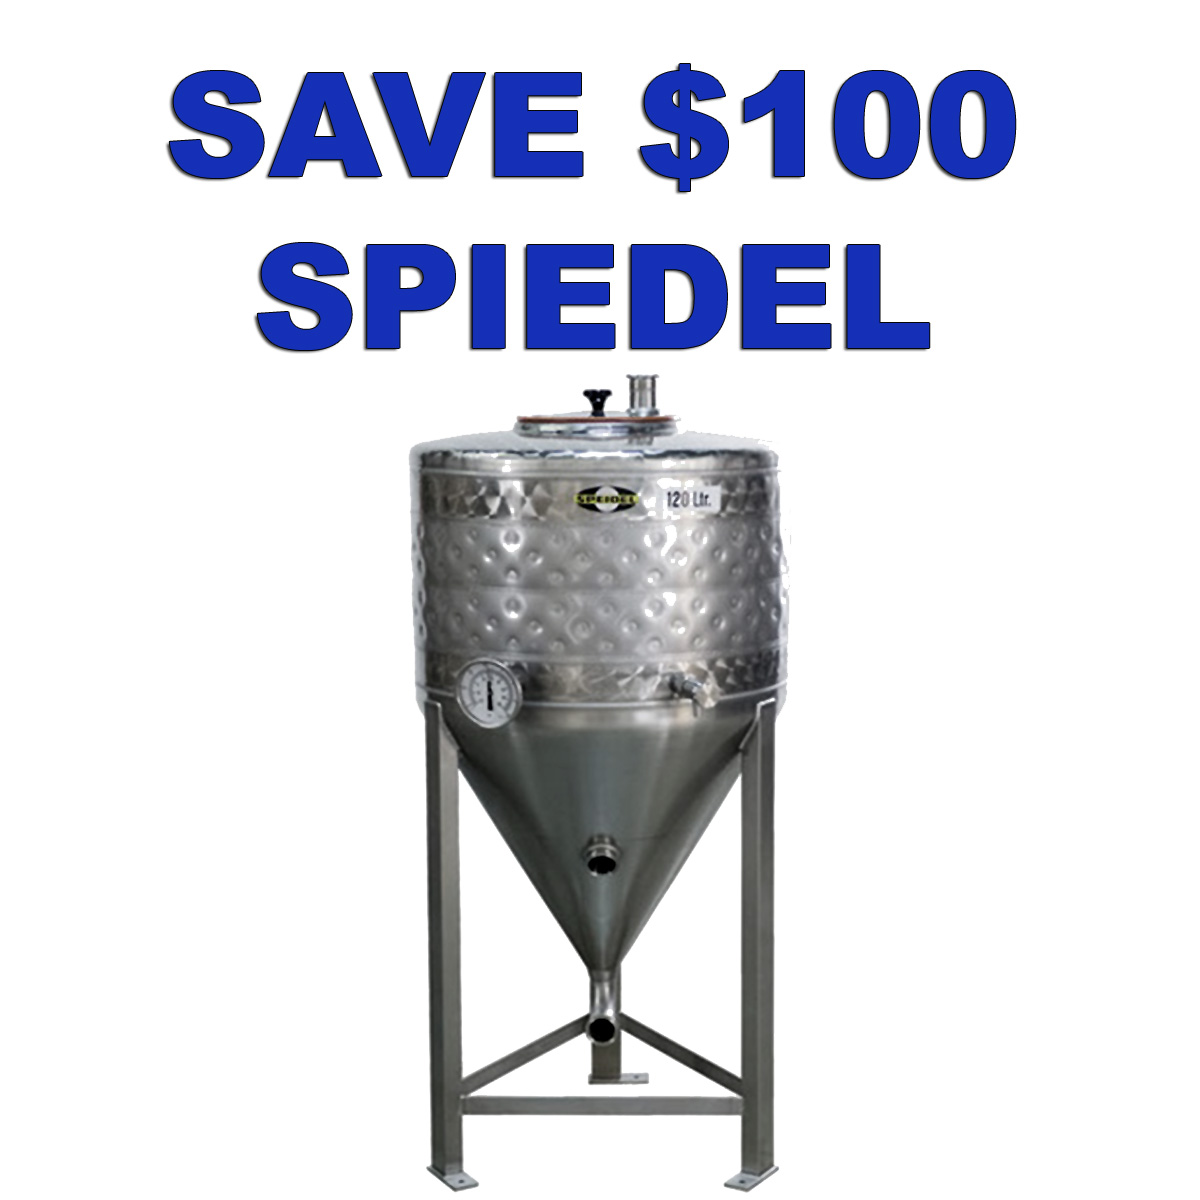 Home Wine Making Coupon Codes for Save $100 On A Speidel Stainless Steel Conical Fermenter with Cooling Jacket! Coupon Code